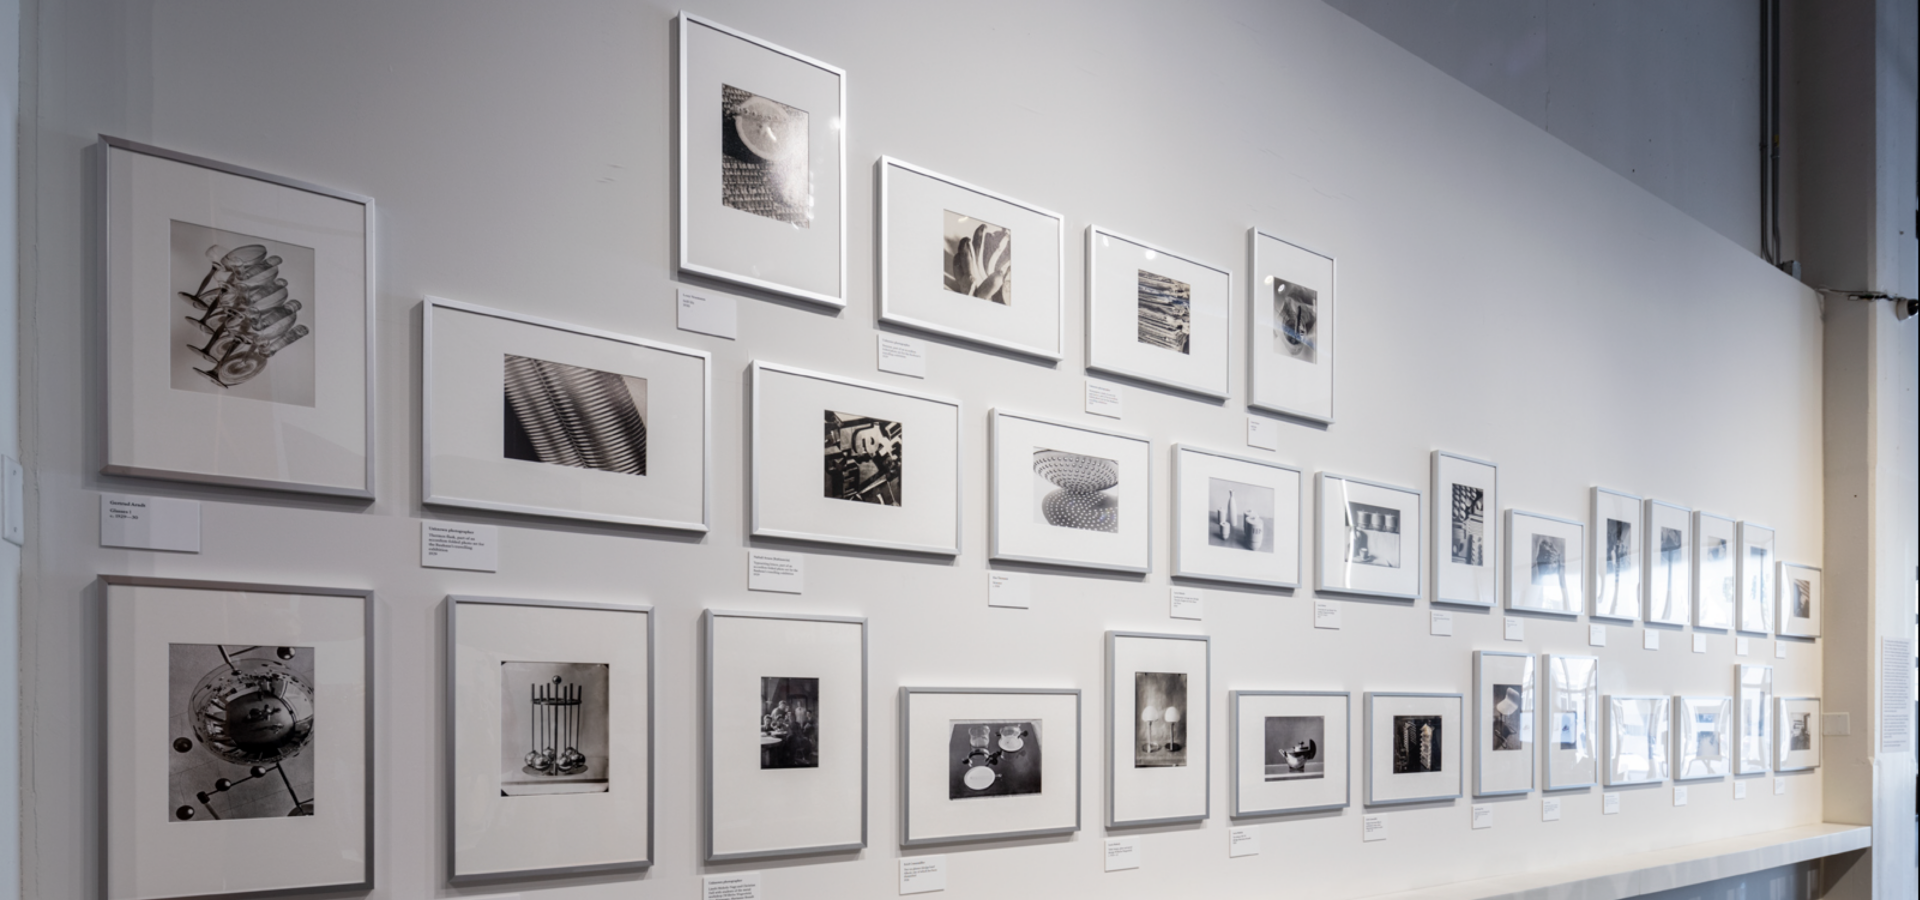 Black and white photos hung on a wall